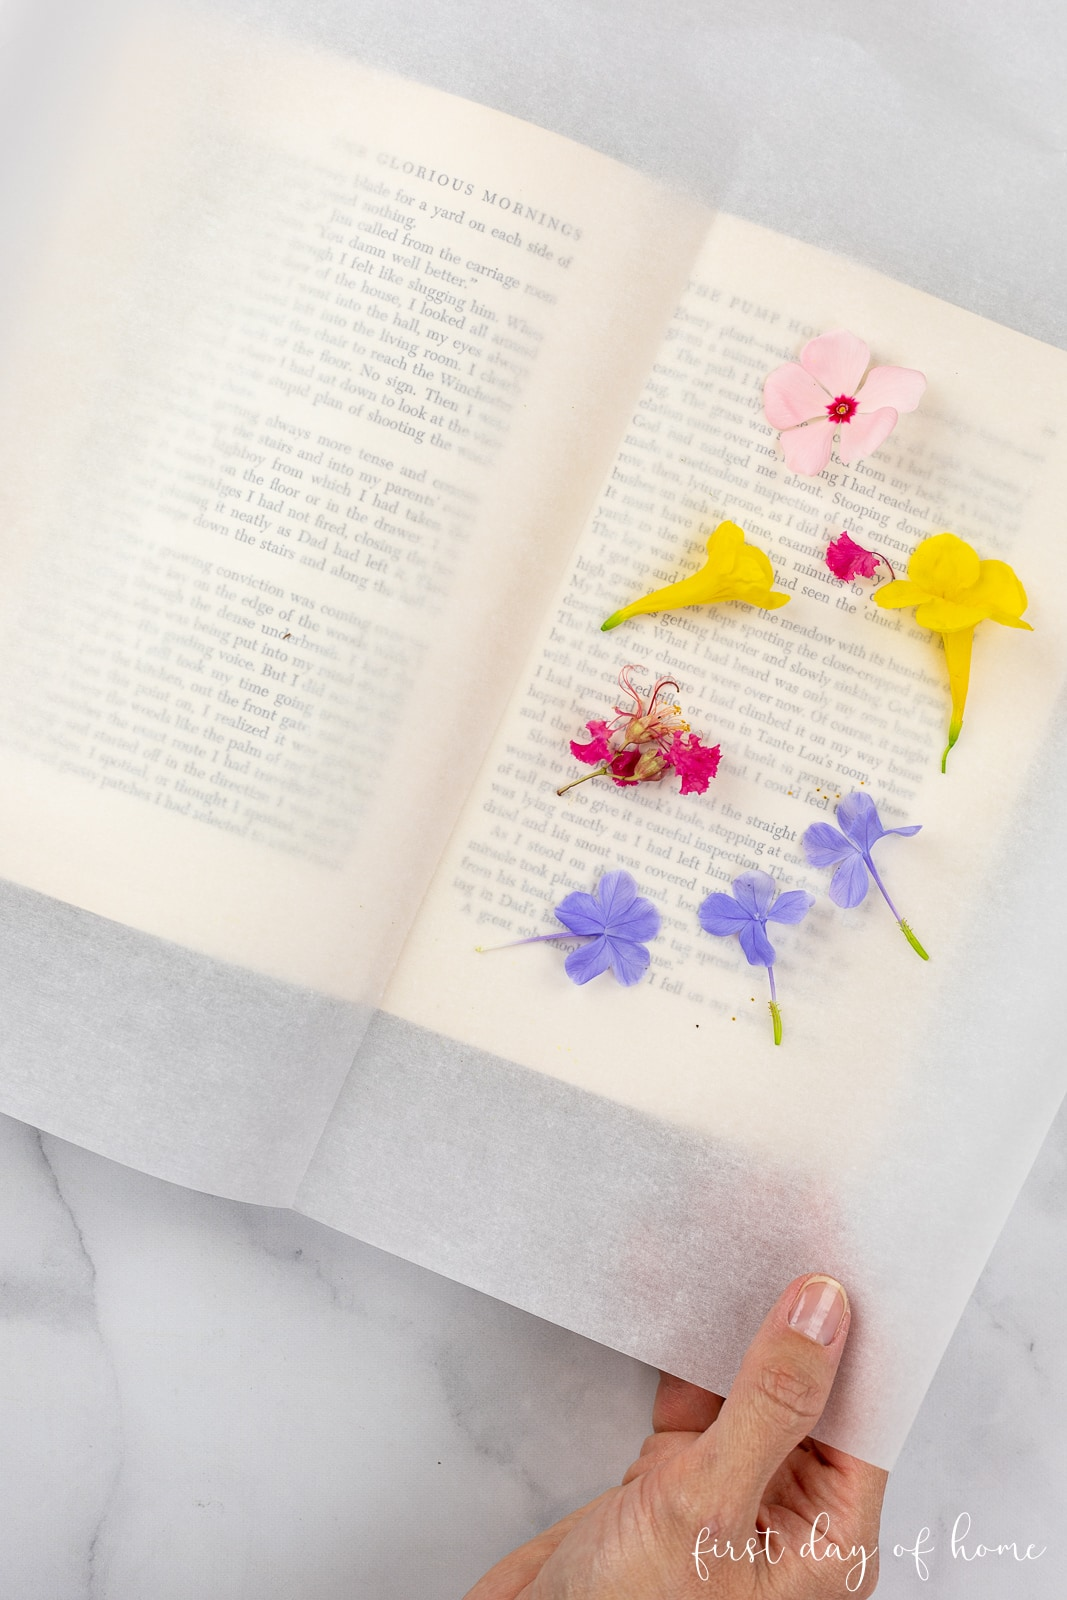 Arranging flowers on parchment paper in a book